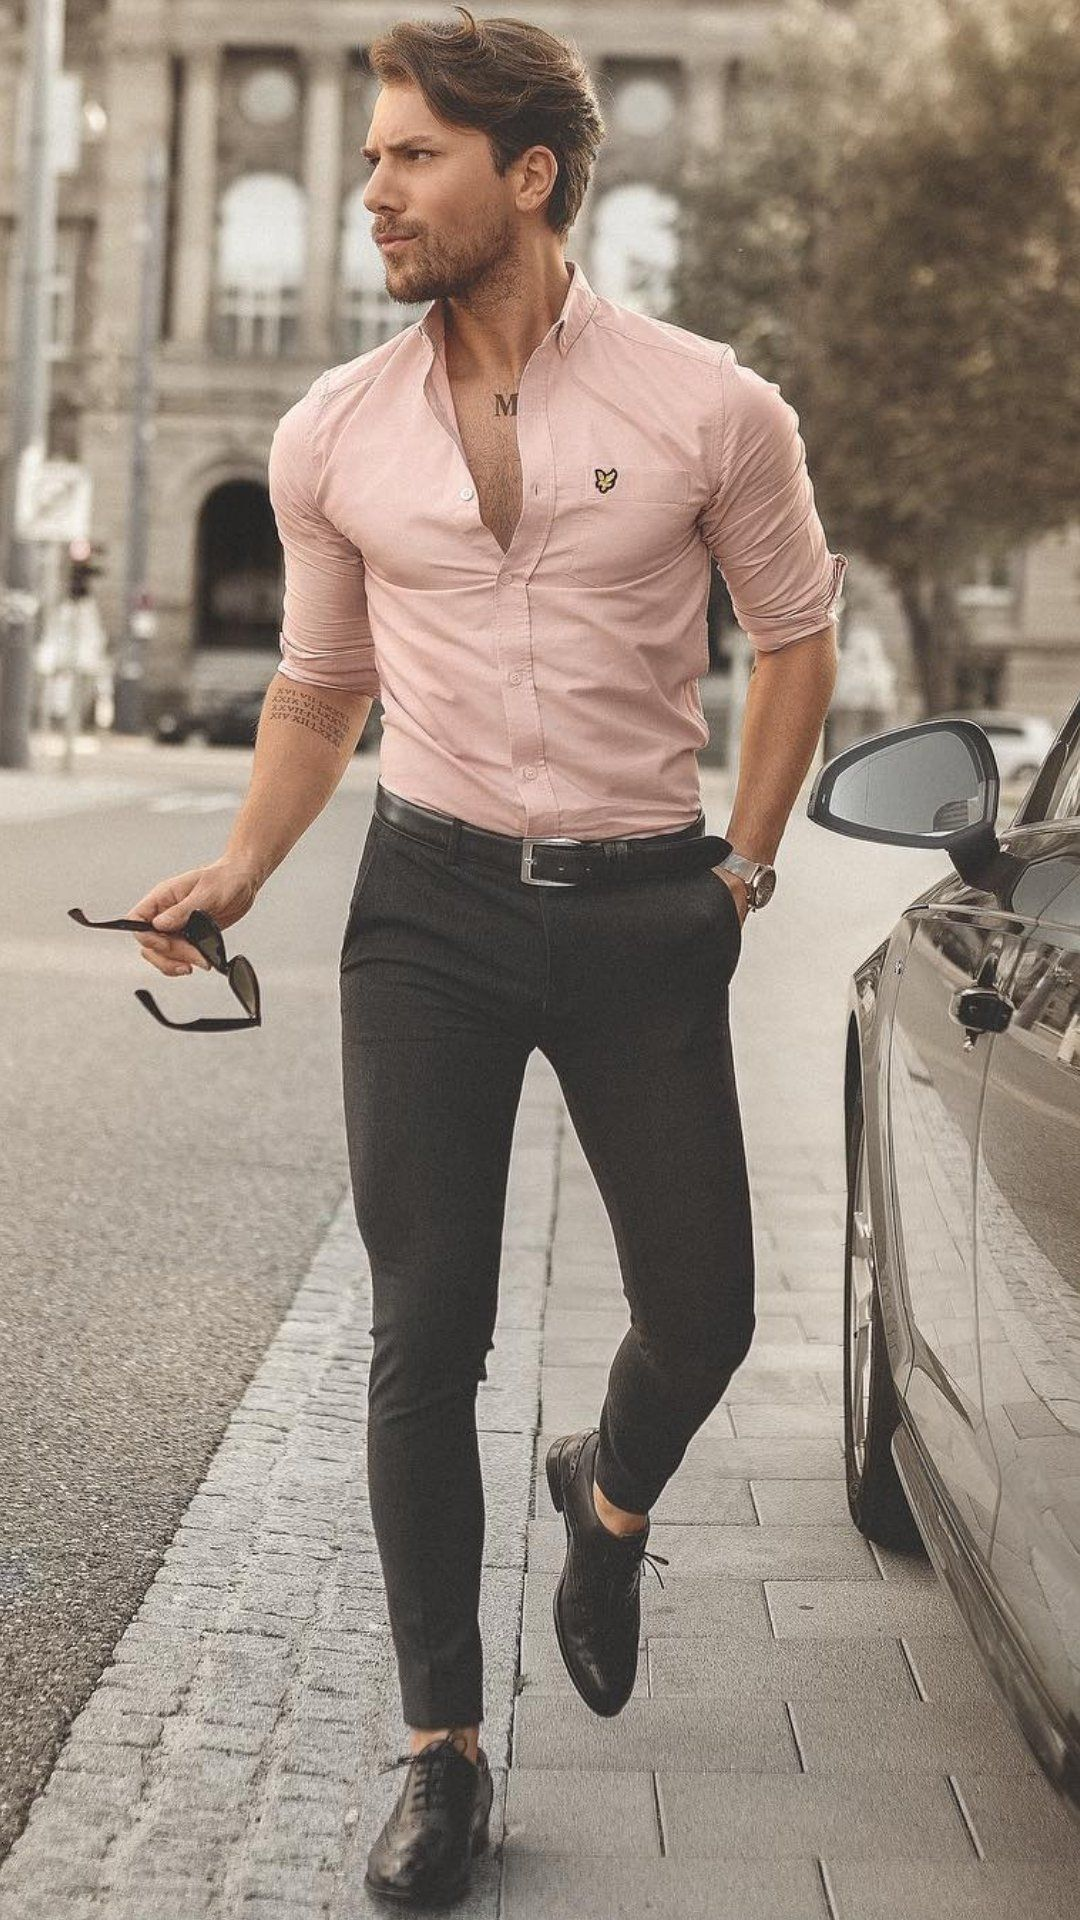 5 Outfits To Looking Great In Shirts – outfits